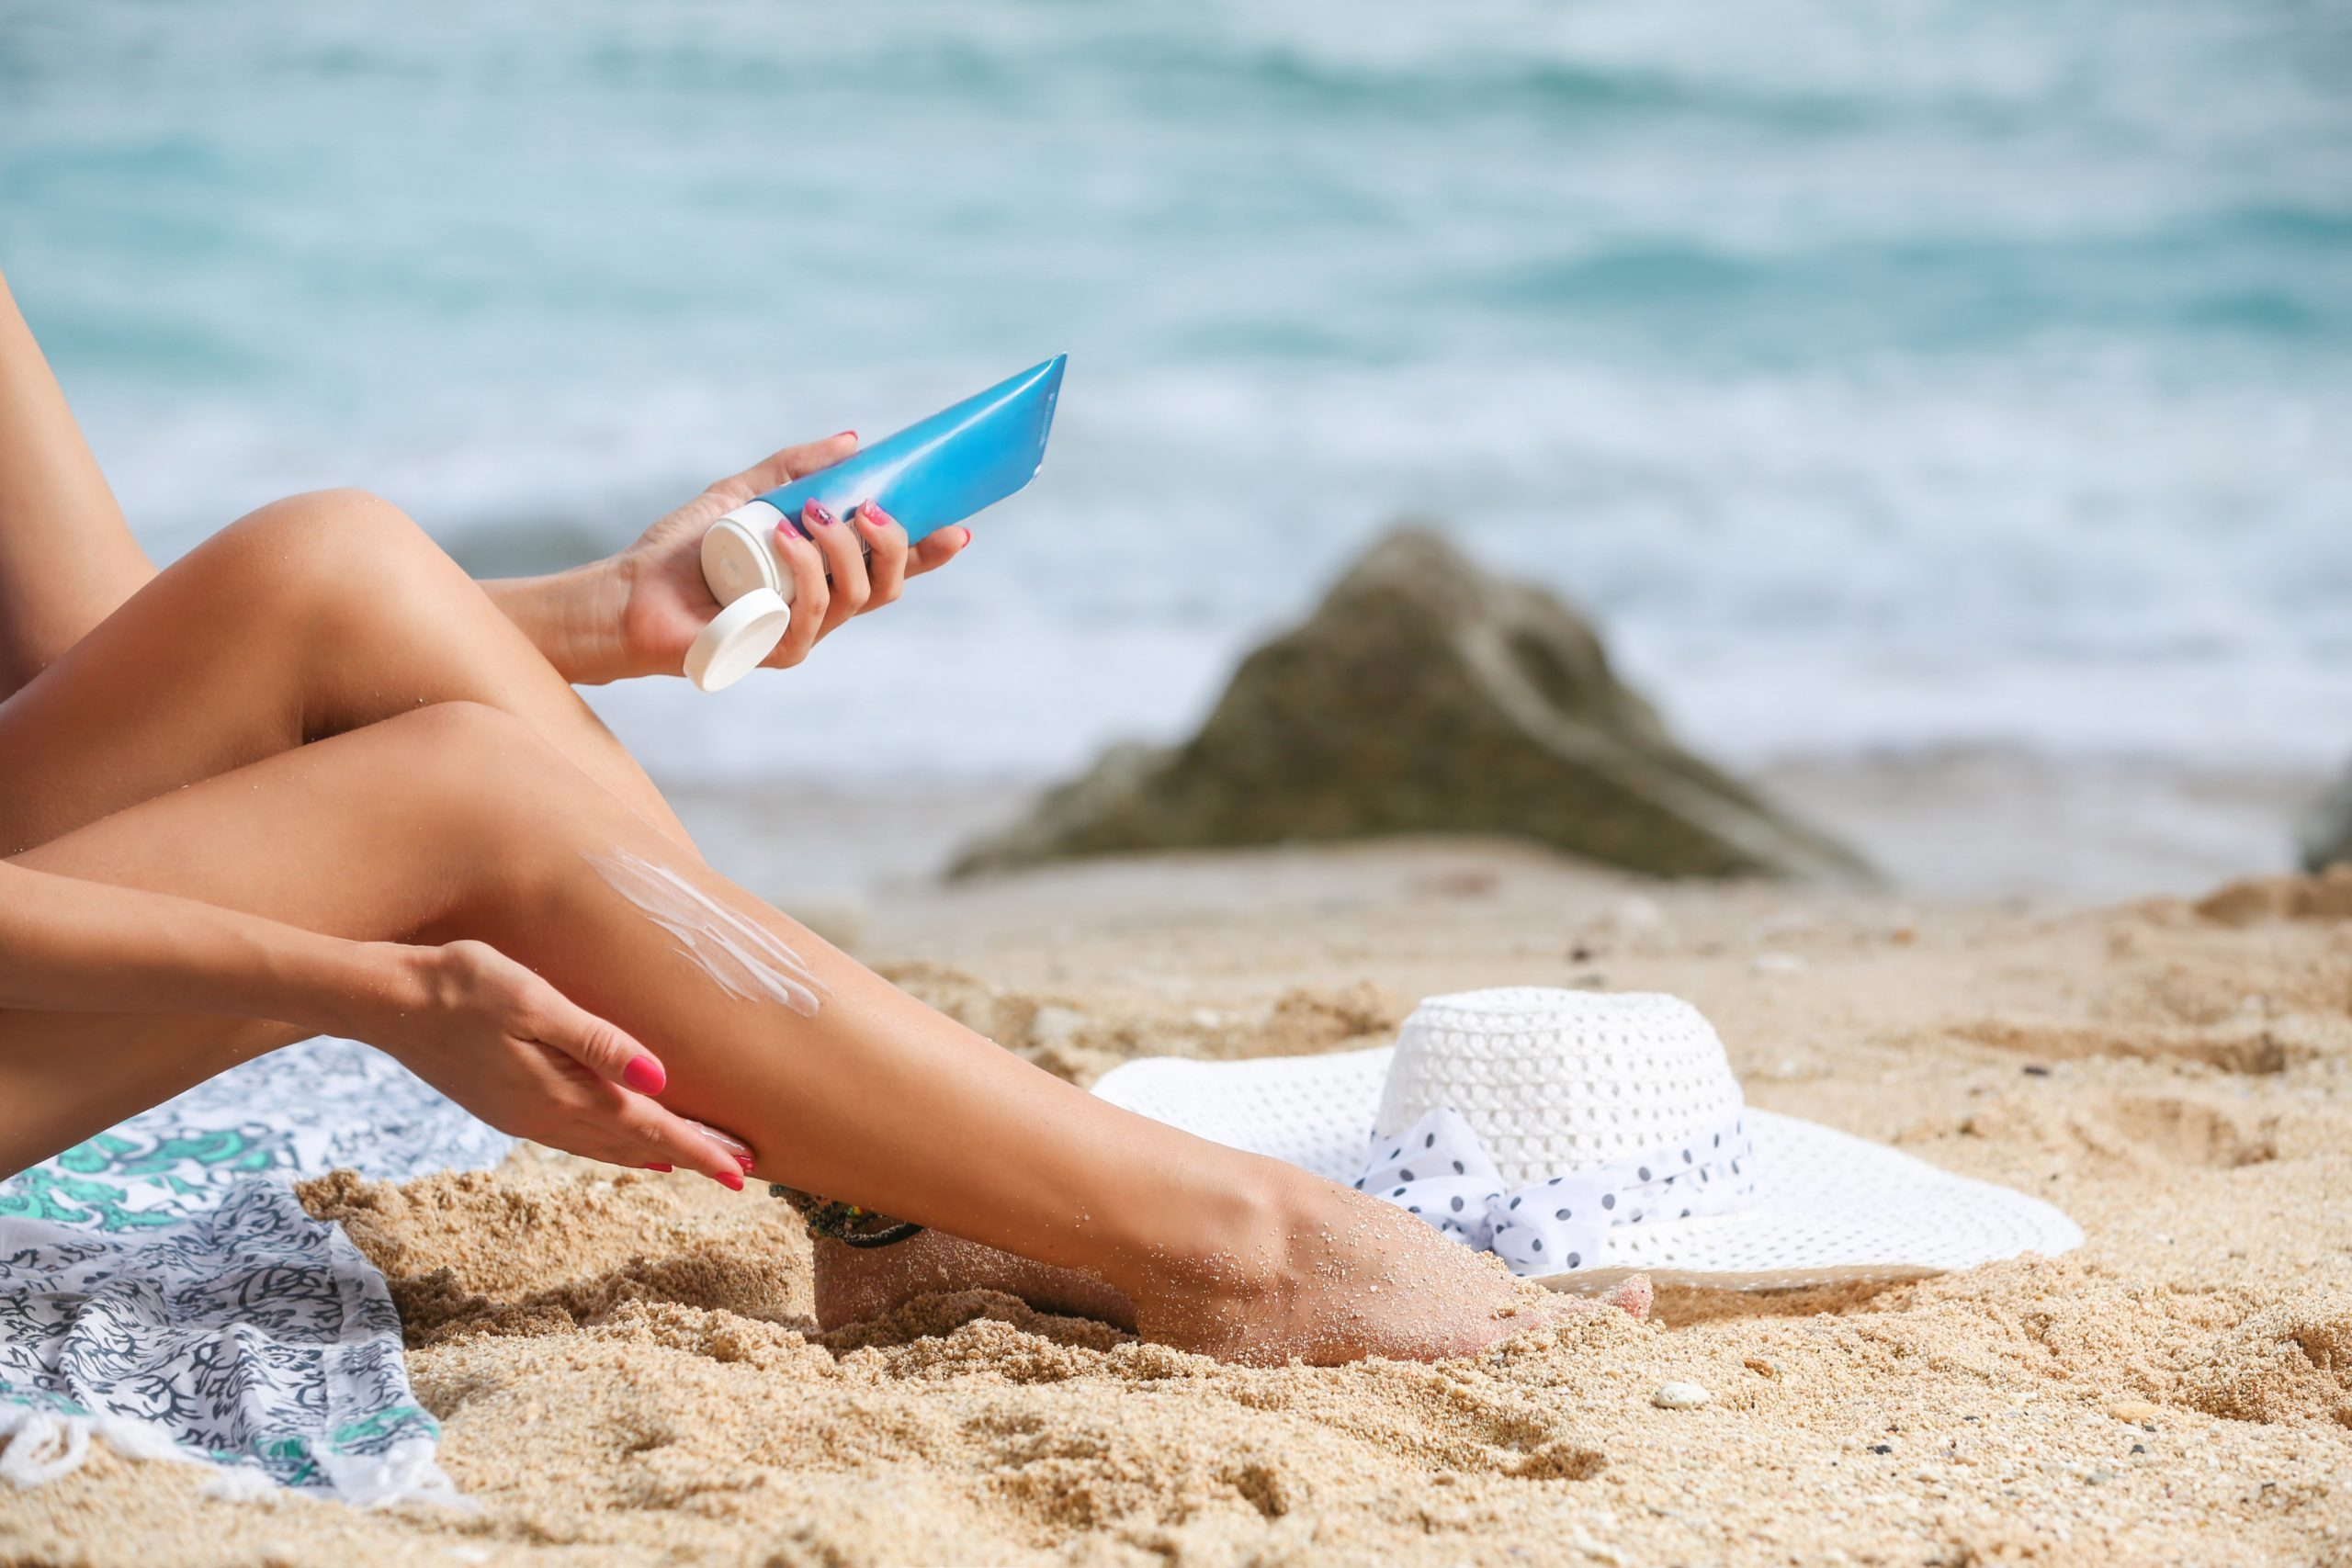 beauty products | Girl applying sunscreen on her legs